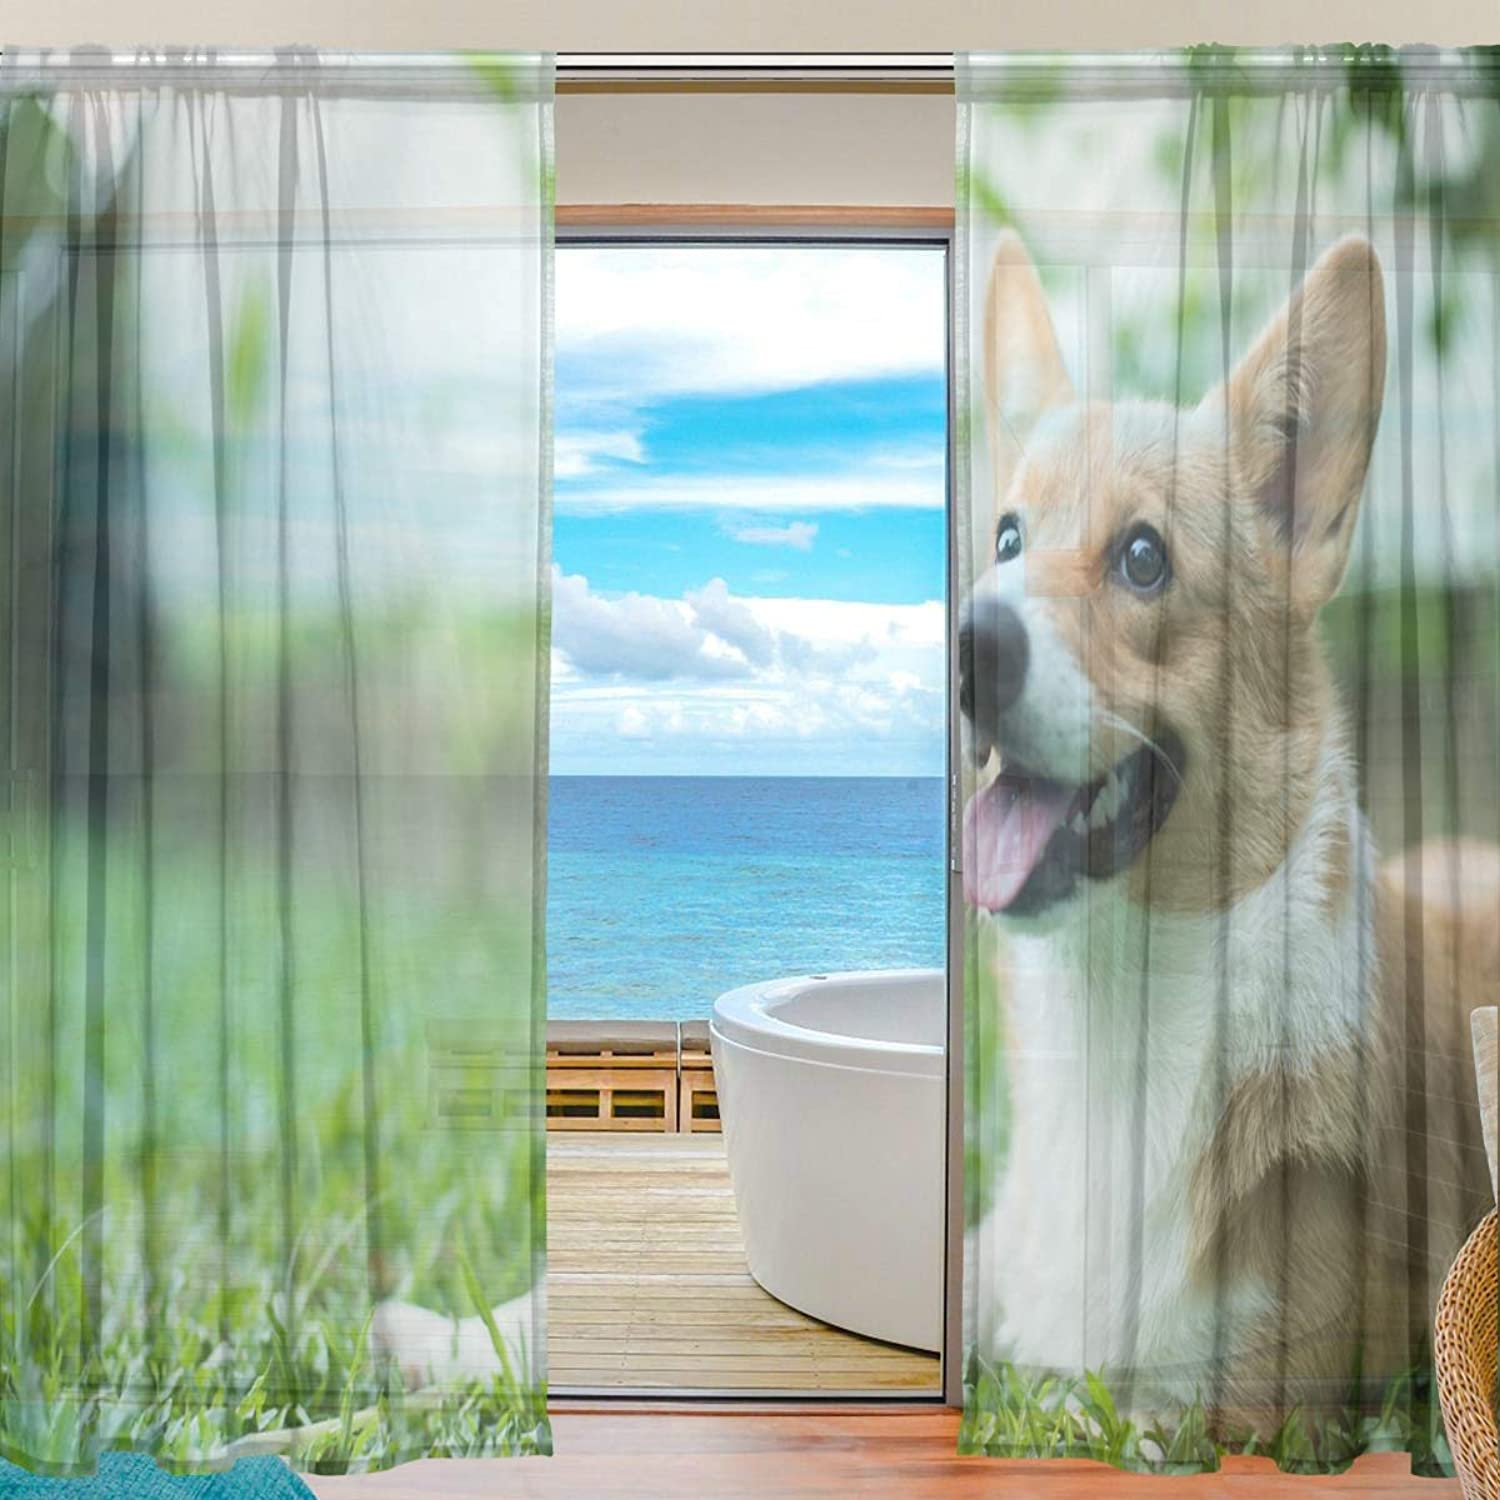 Cute Corgi 2 Pieces Curtain Panel 55 x 78 inches for Bedroom Living Room